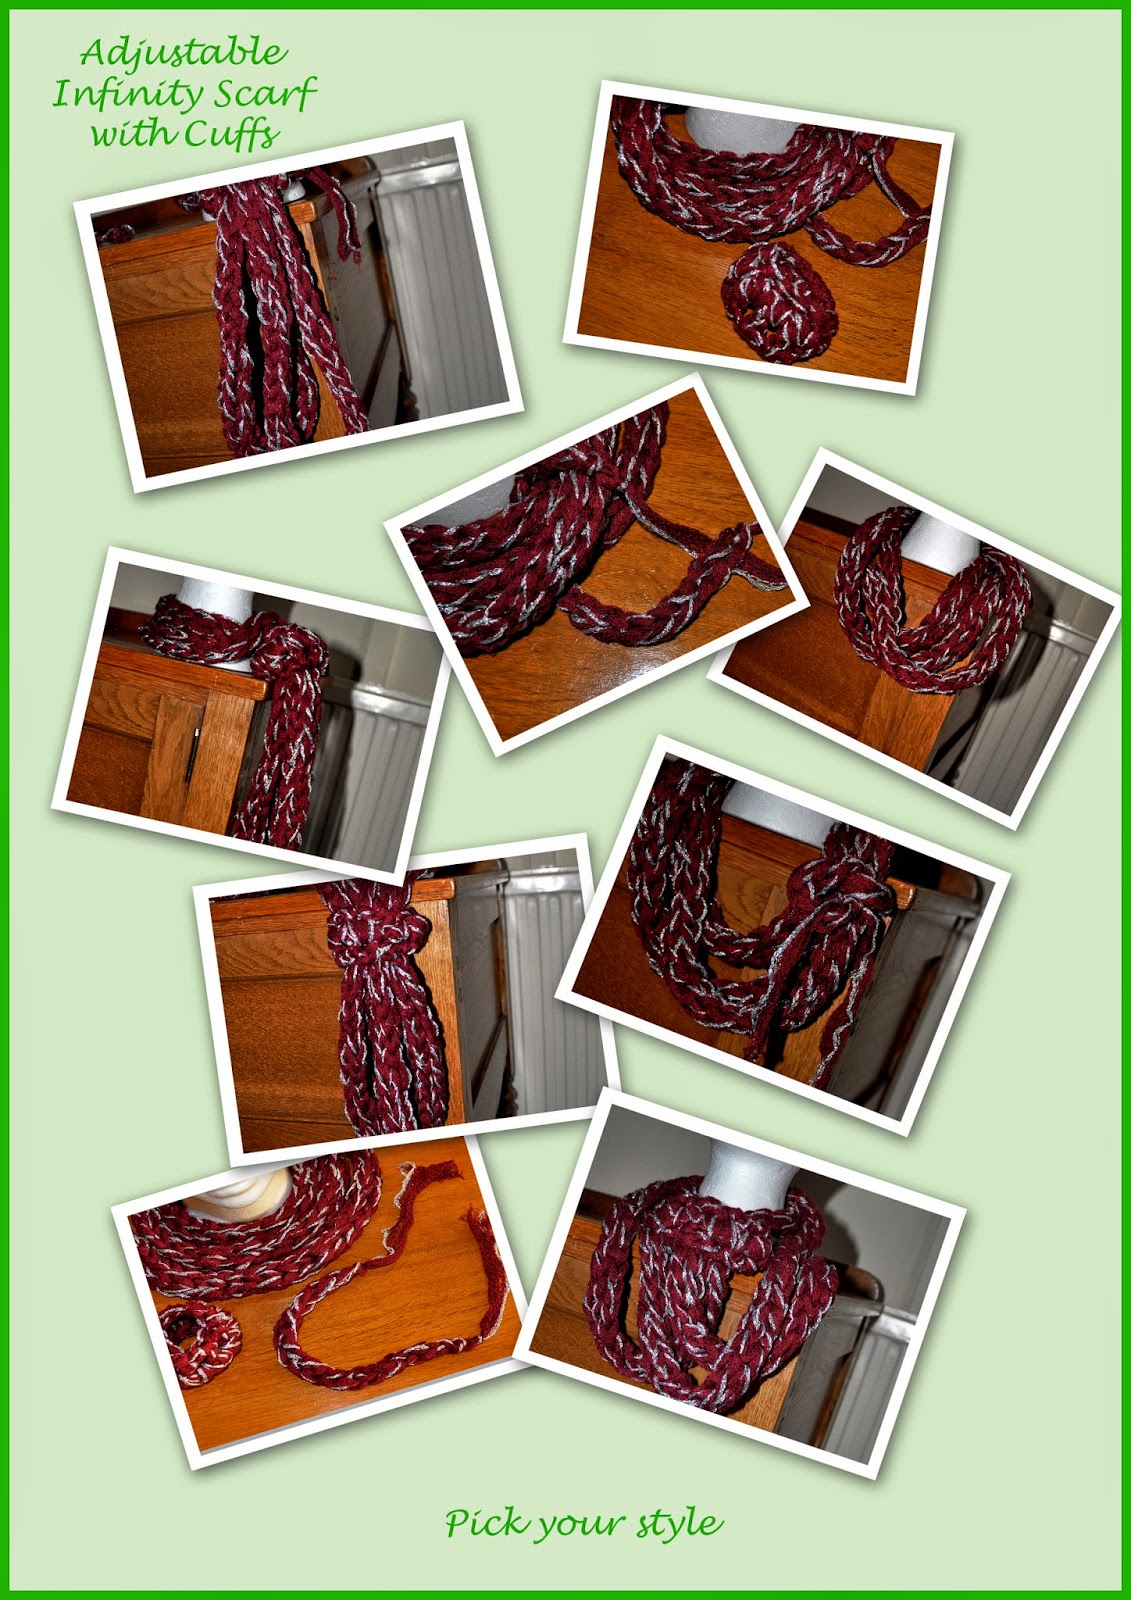 hand made infinity scarf and cuffs